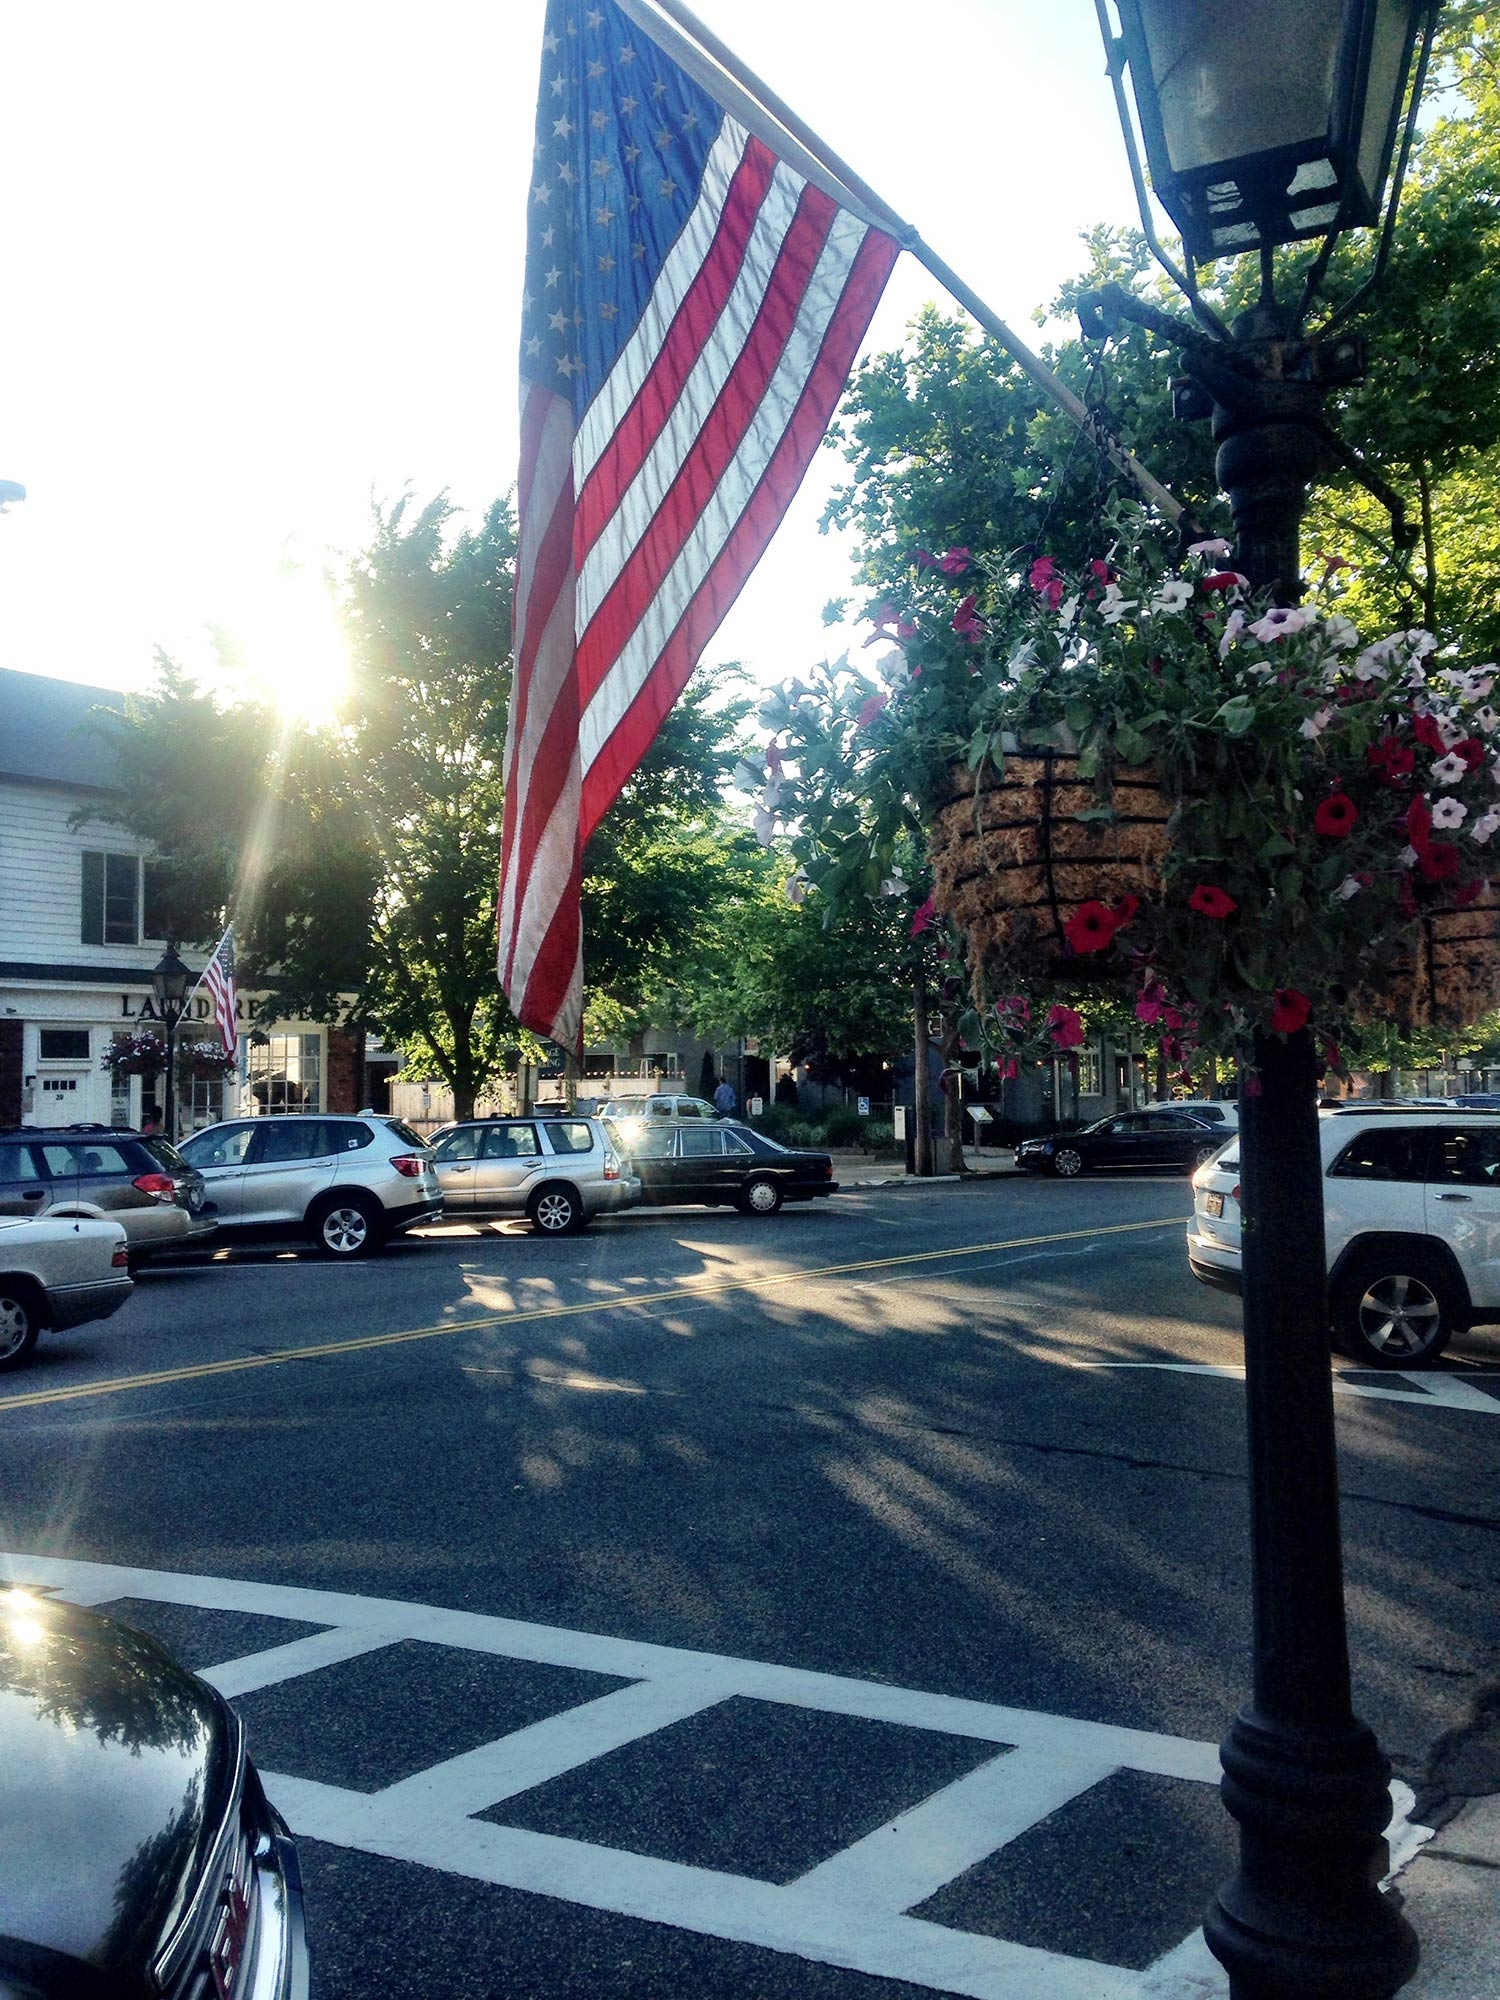 The American flag hanging from a pole on a street in East Hampton